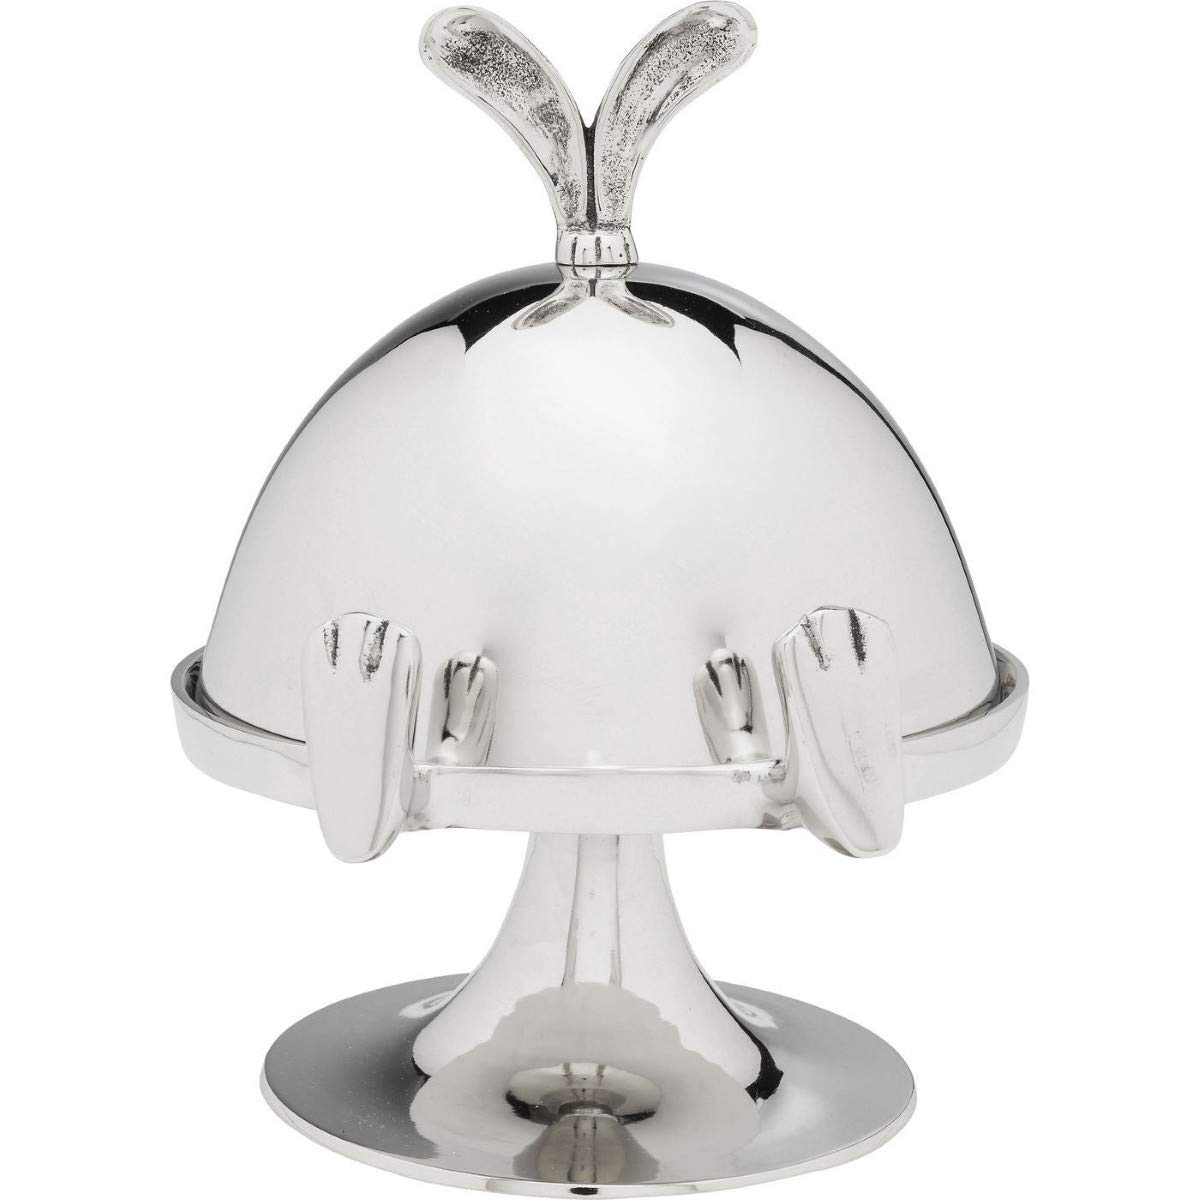 Kare 23 x 23 x 20 cm Cake Bell Bunny, Nickel-plated aluminum, Silver